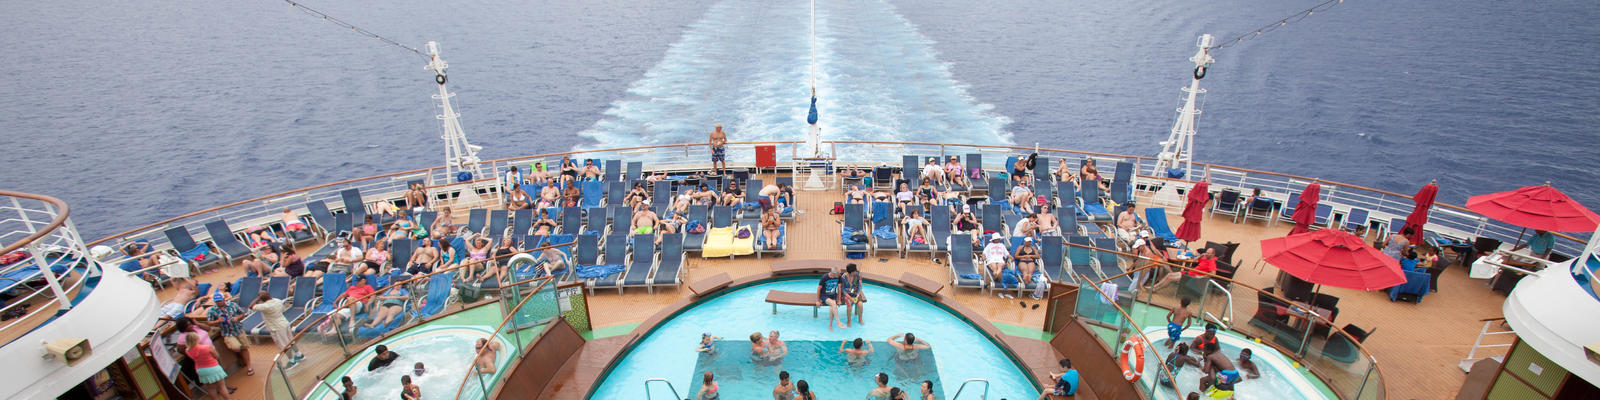 Top 10 Things to Do on Sea Days (Photo: Cruise Critic)